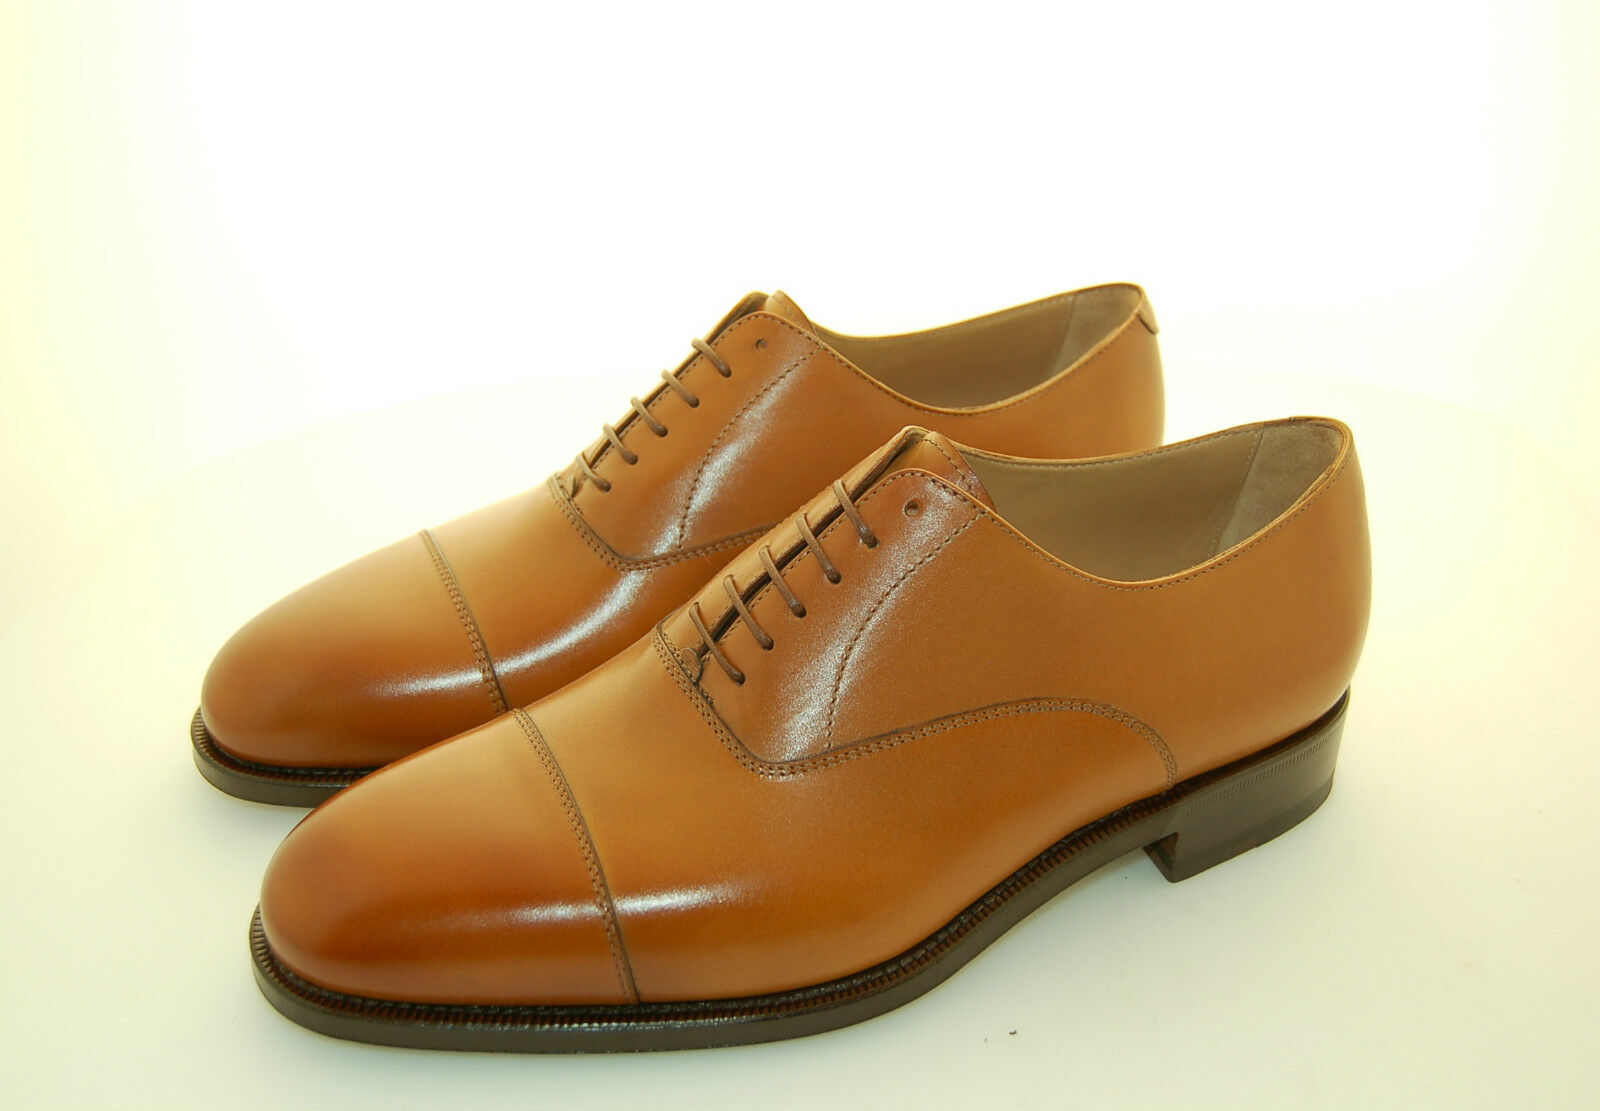 MAN-OXFORD CAPTOE-CALF RUSTIC BOMBAY-FRANCESINA VITELLO-LTHR SOLE-SUOLA CUOIO